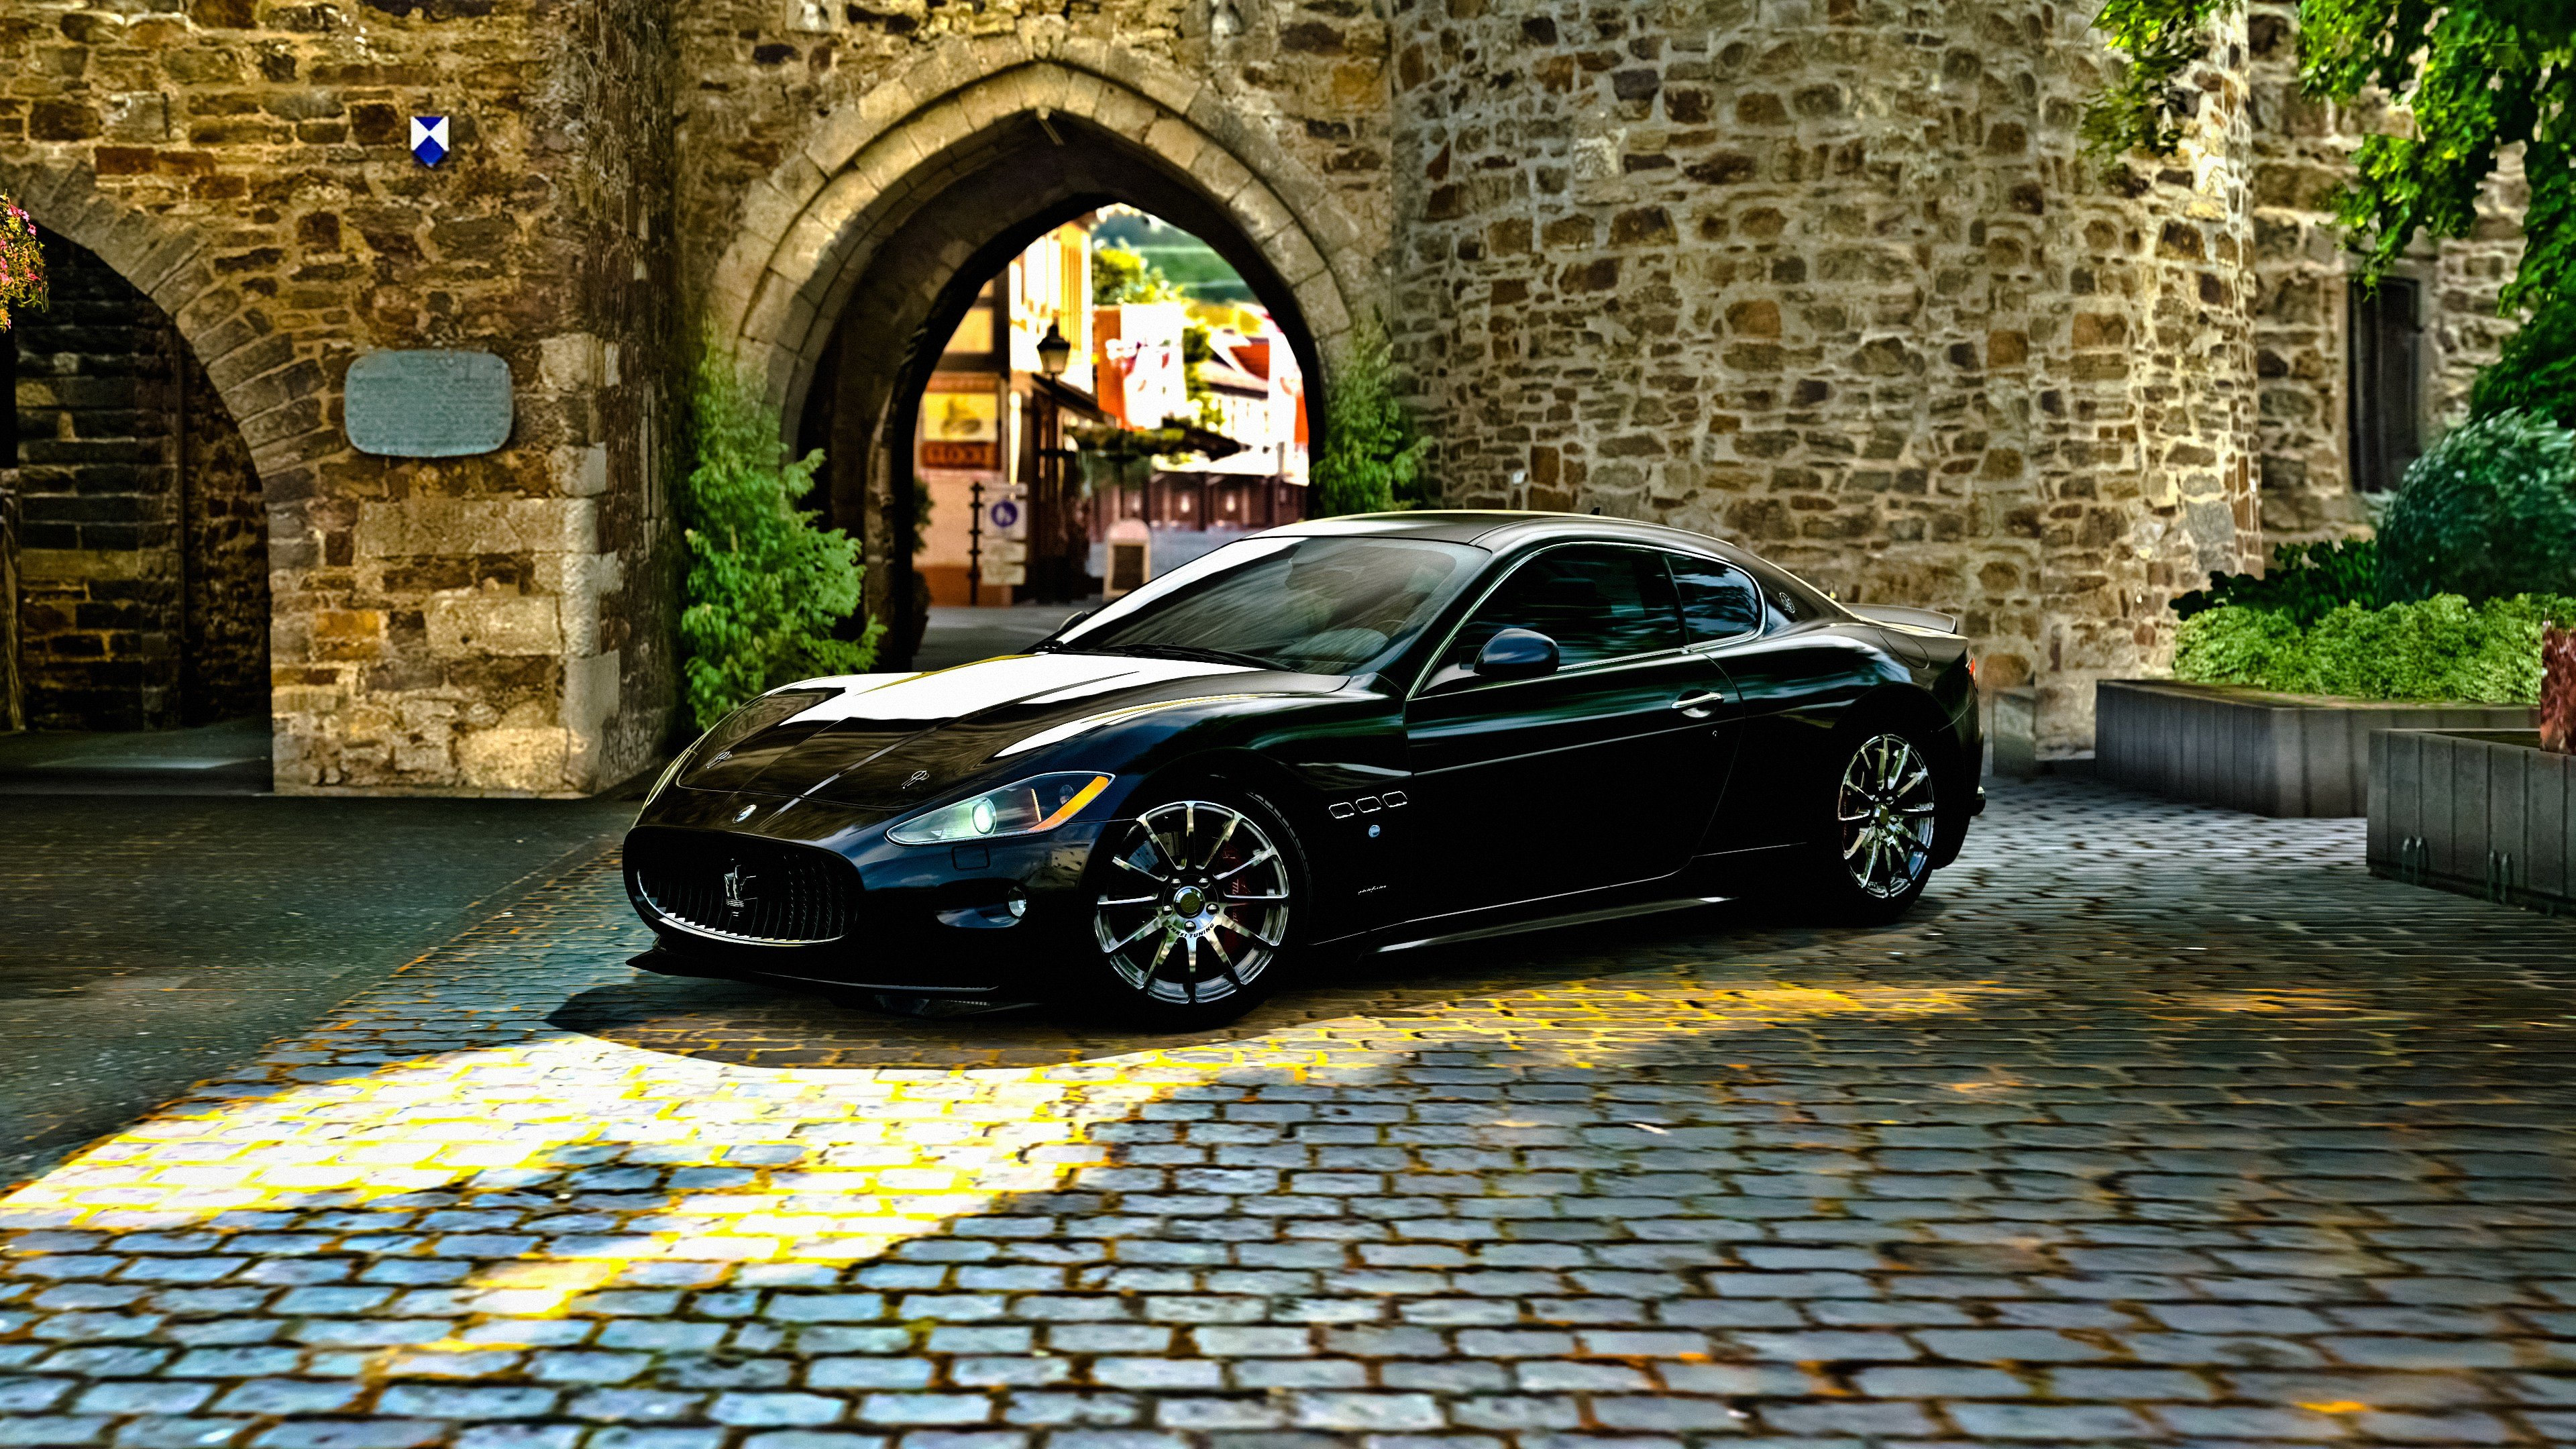 Latest 526 Maserati Hd Wallpapers Background Images Wallpaper Free Download